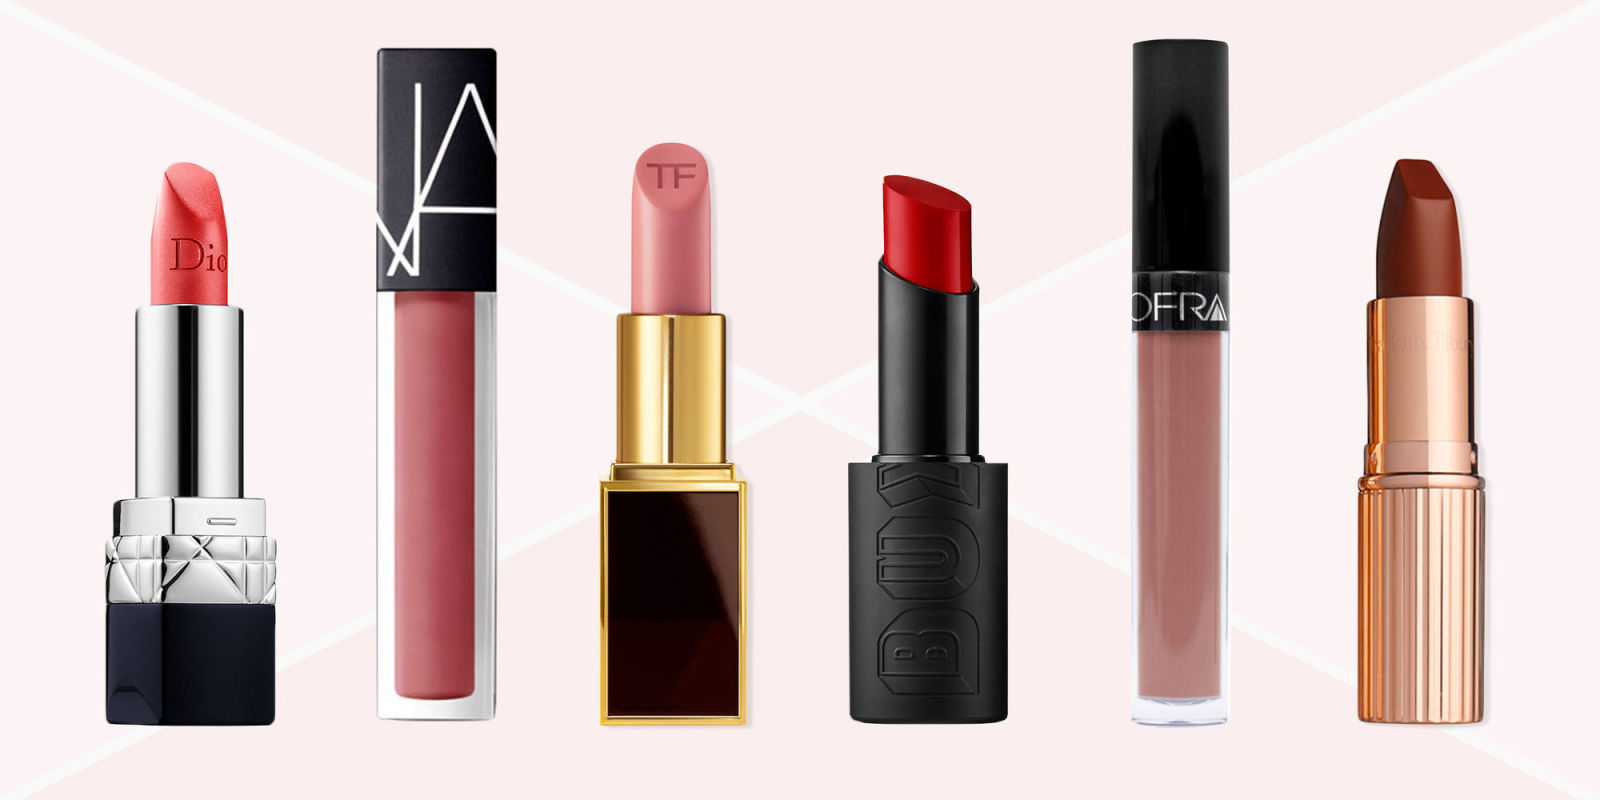 15 Best Red Lipsticks for 2017 - Iconic Red Lipstick Colors and ...